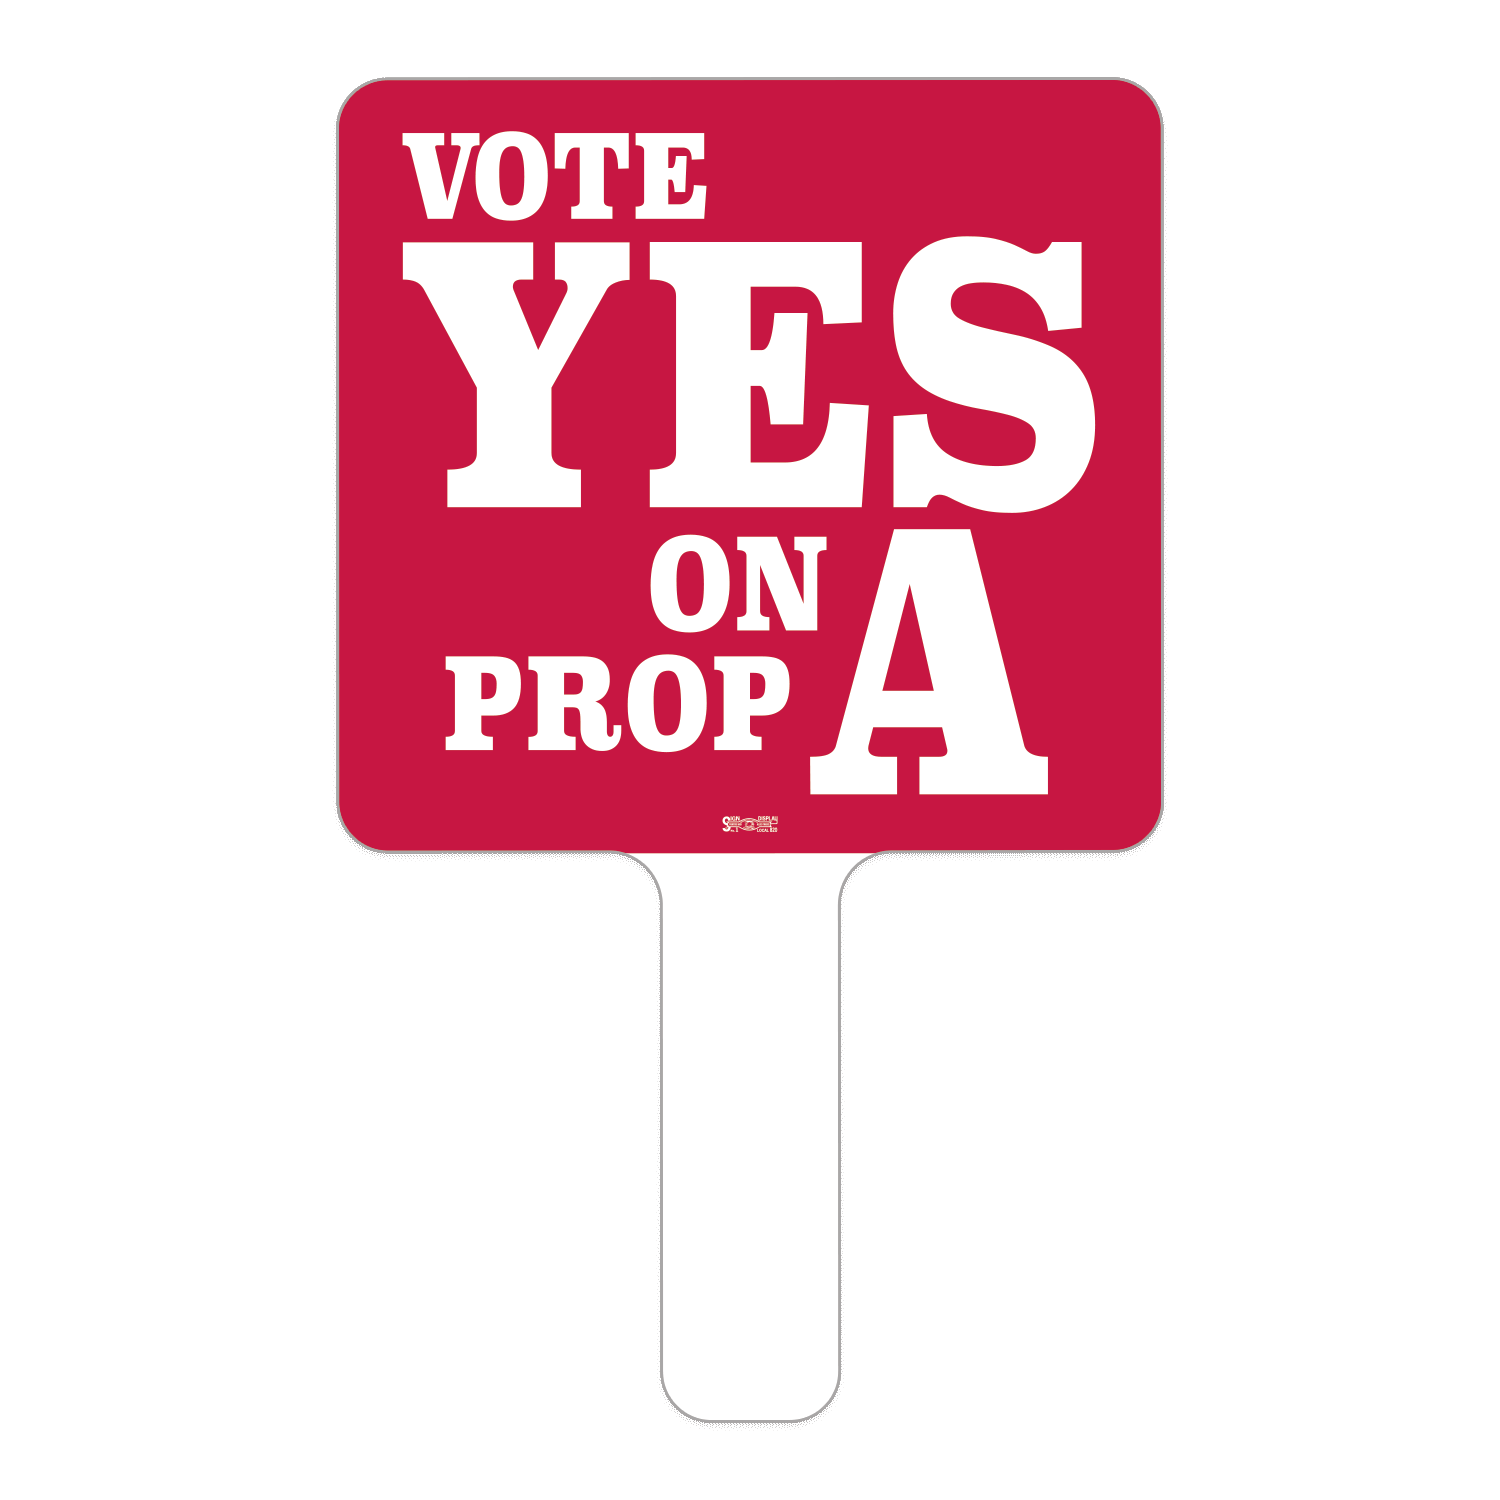 https://www.sswprinting.com/images/products_gallery_images/104231_Vote-Yes_hi-res34.png